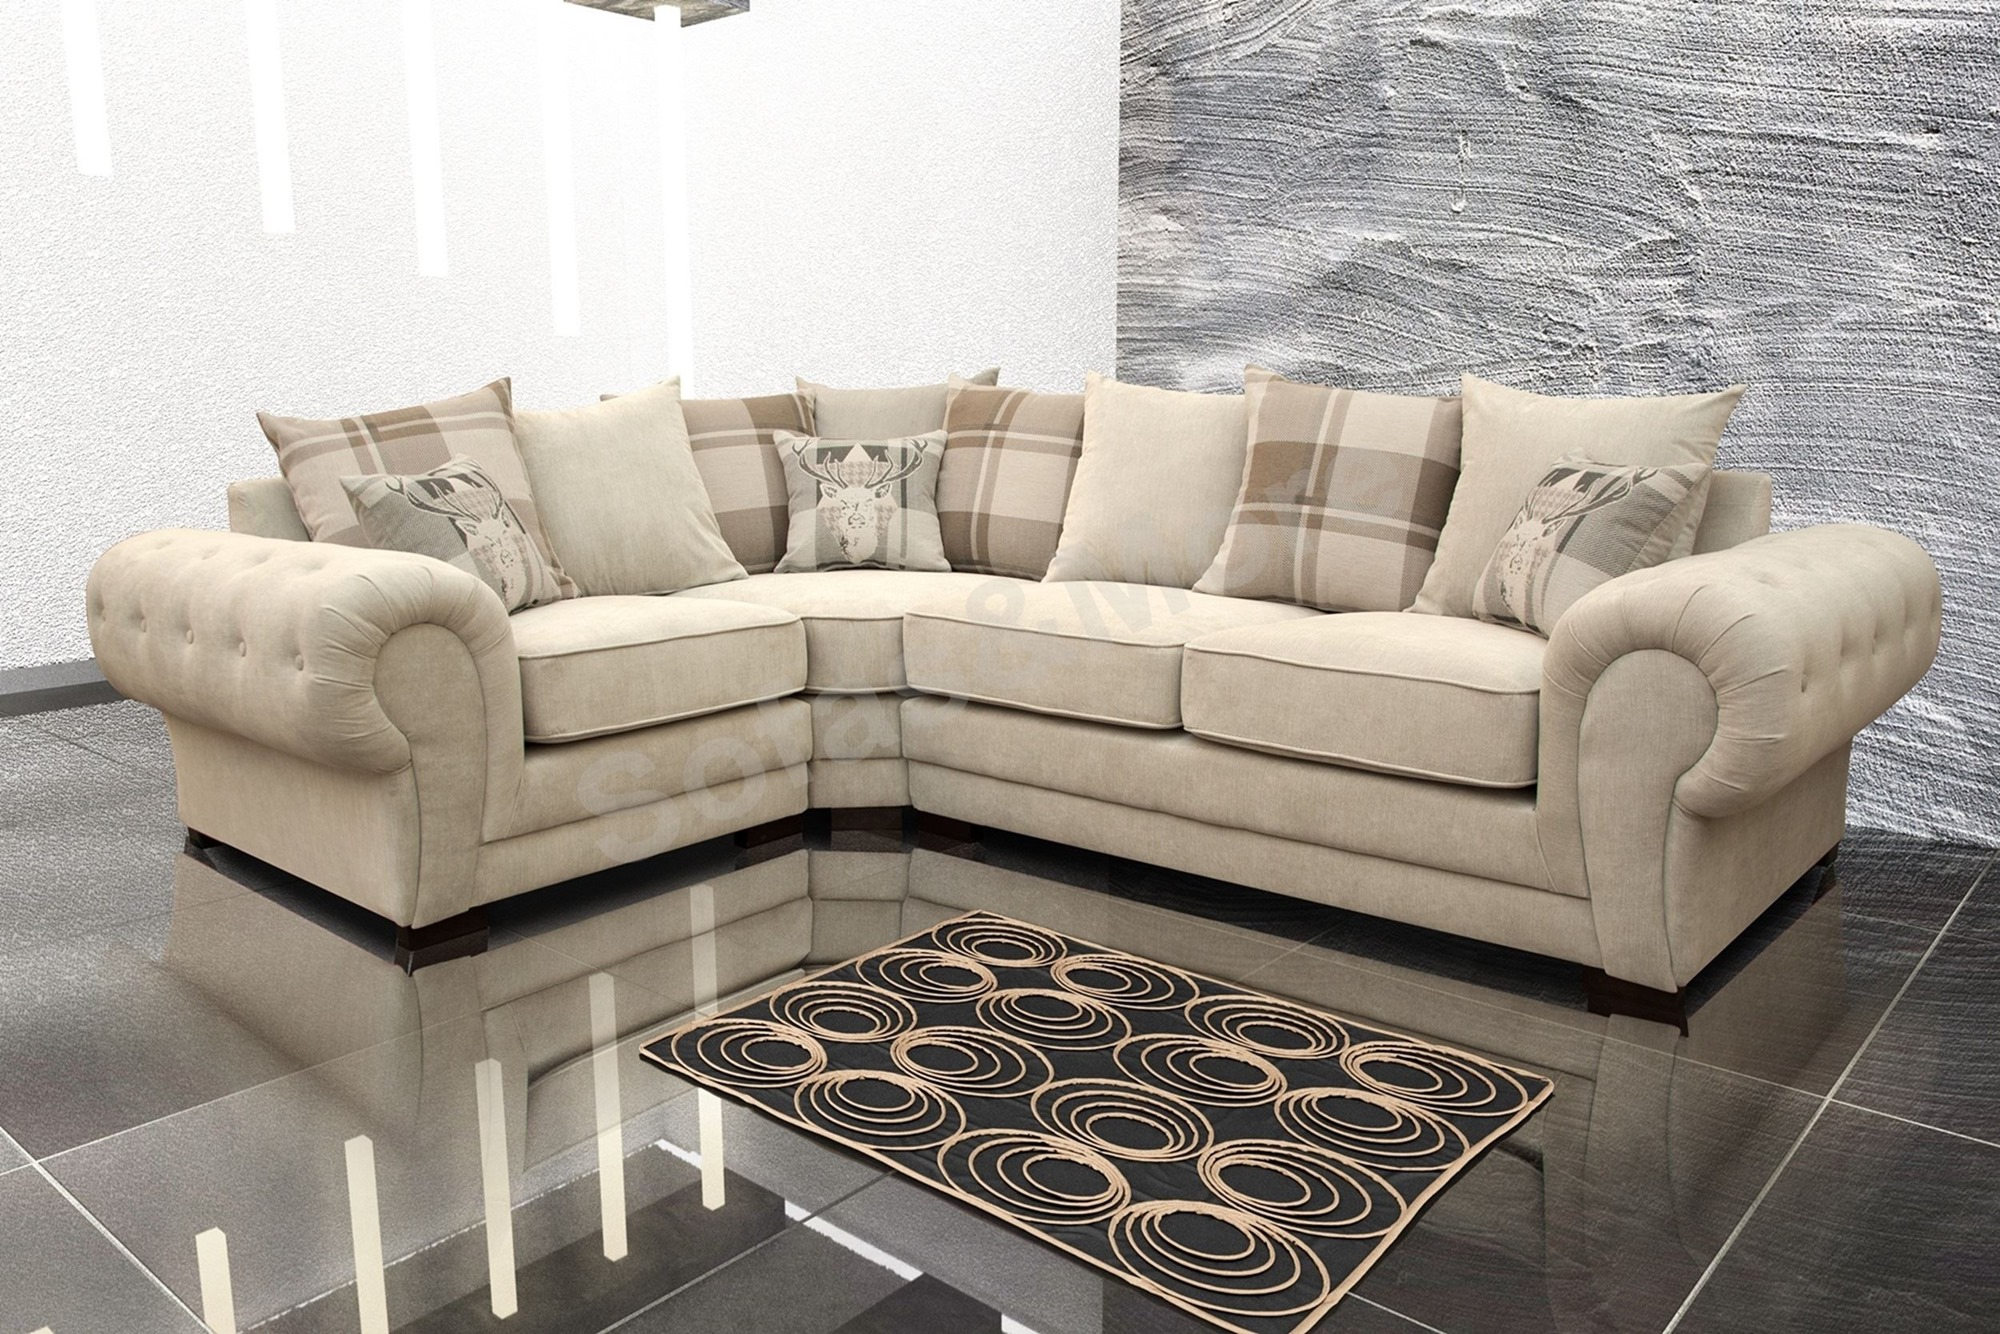 cheap cream sofa how to stop cats scratching leather fabric corner energywarden